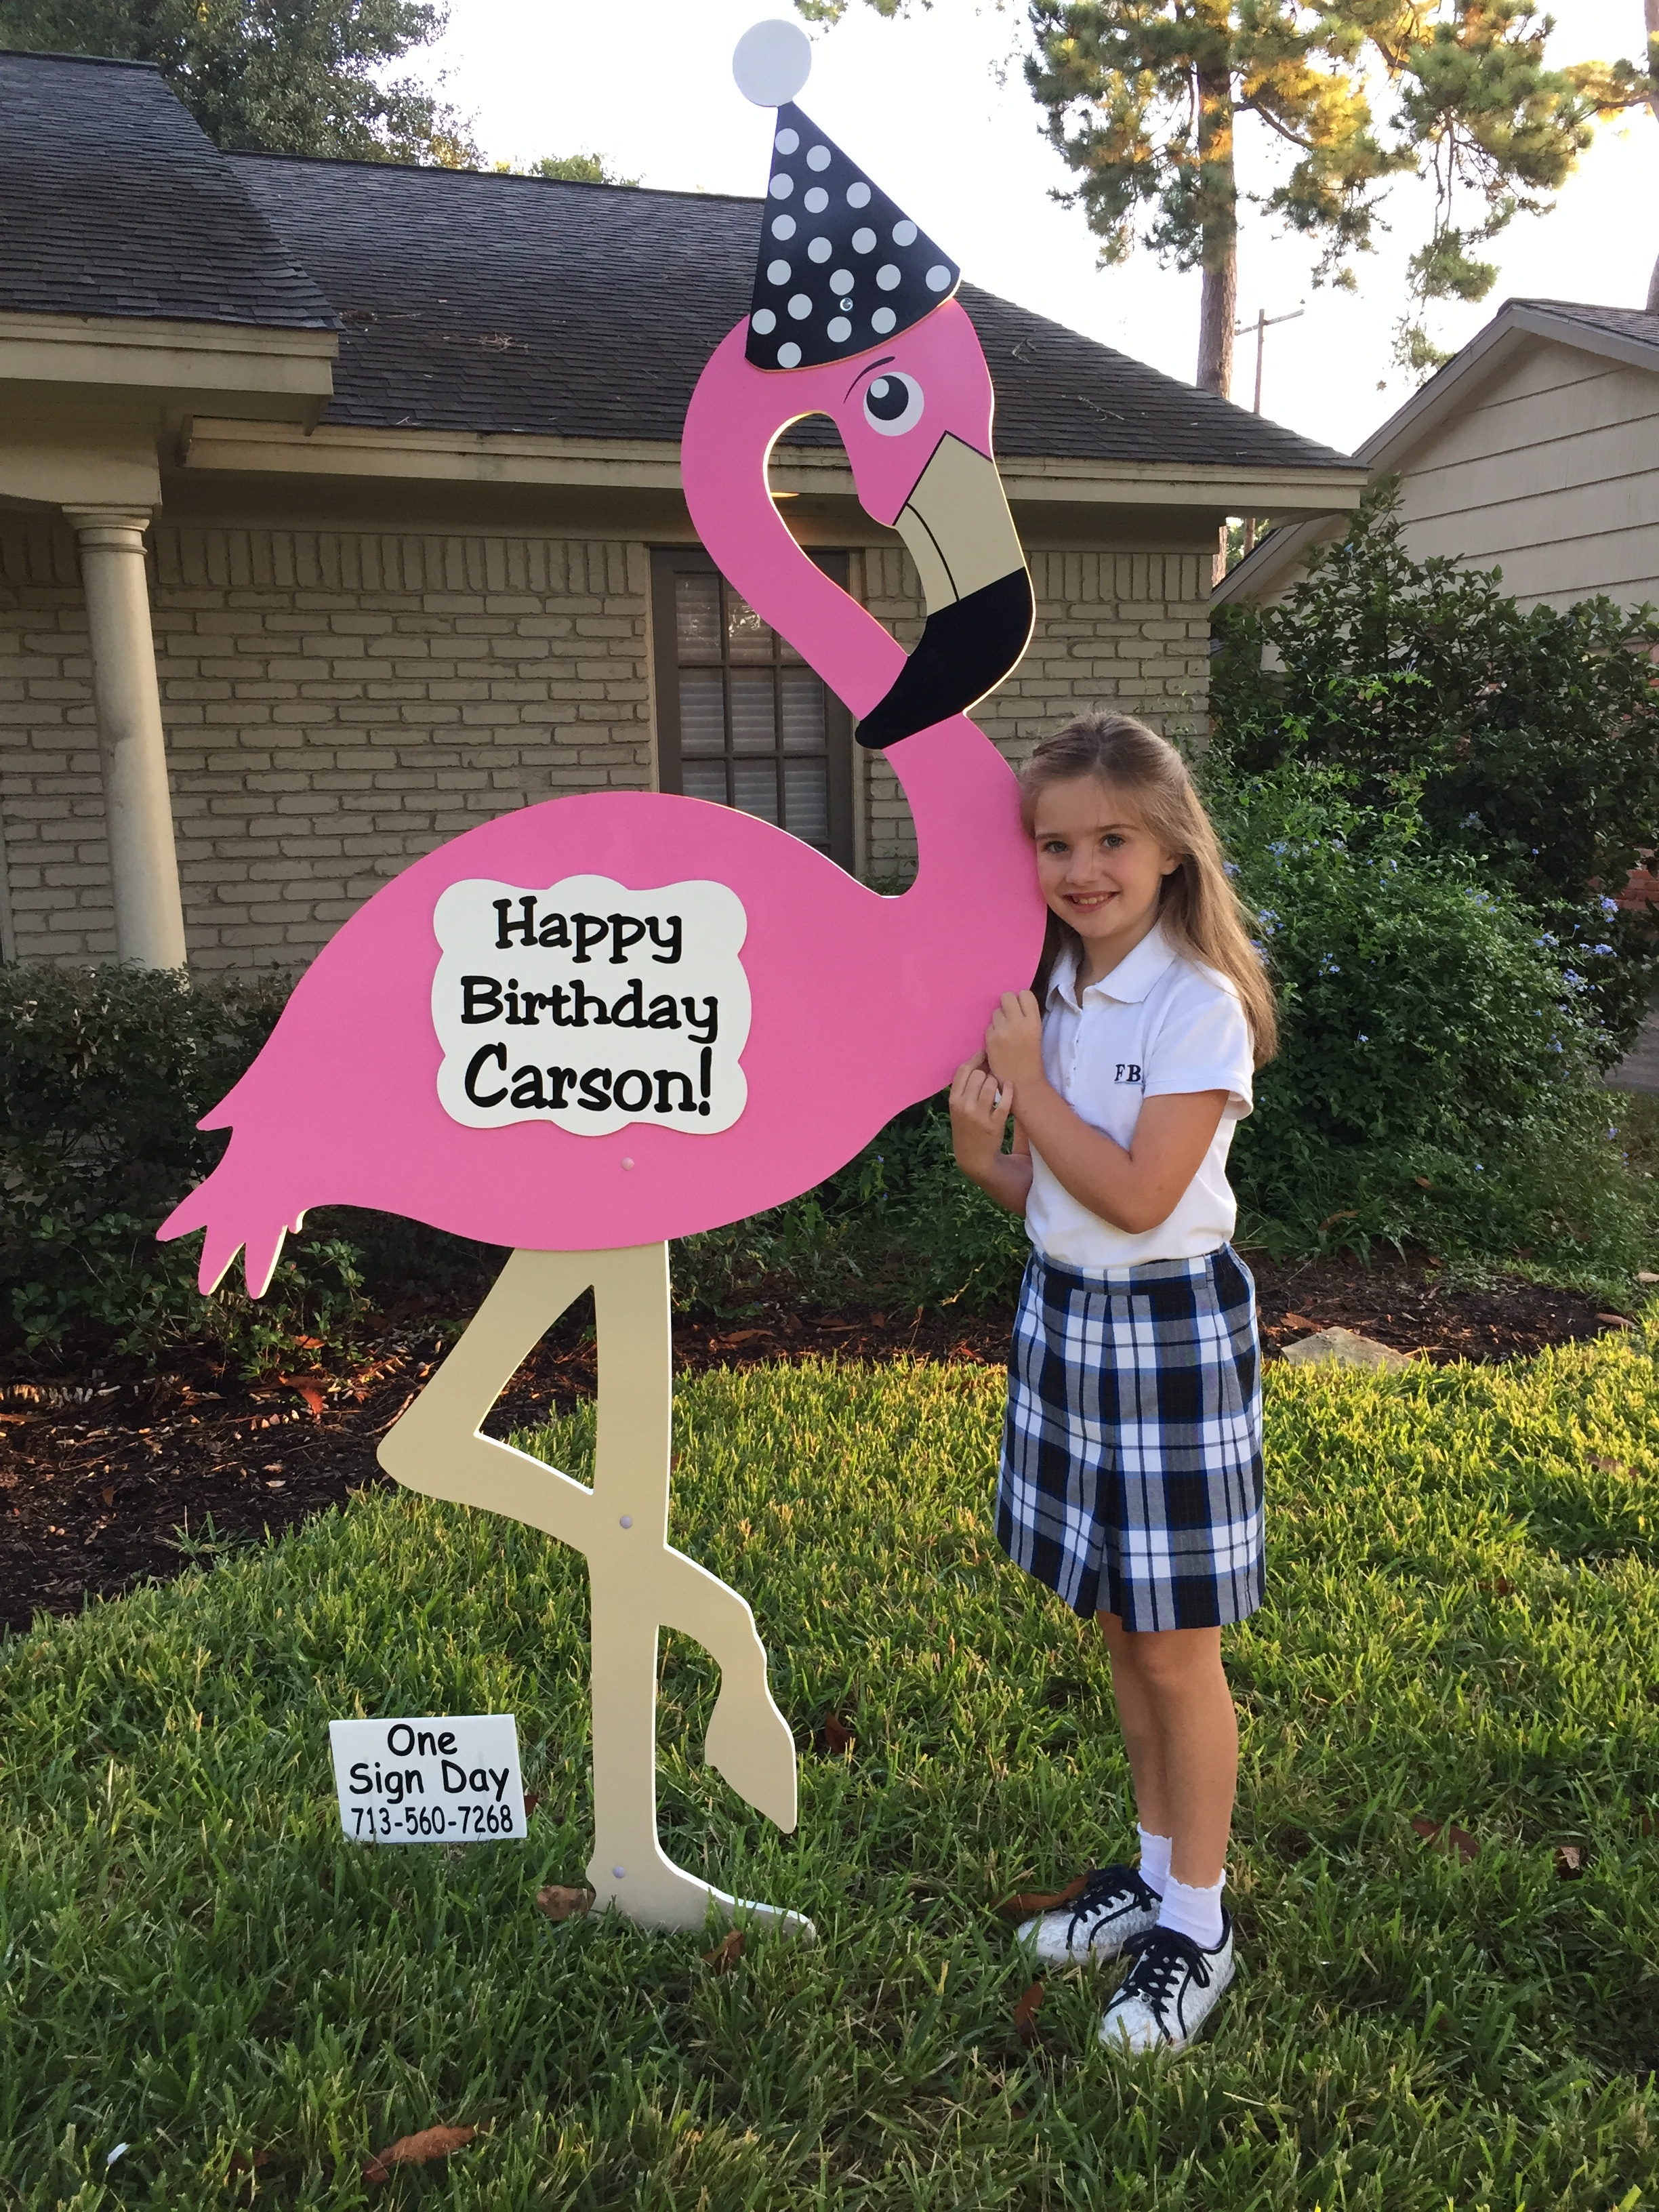 Happy Birthday Flamingo Sign Rental One Sign Day New Baby And Birthday Sign Rentals Houston Texas Area